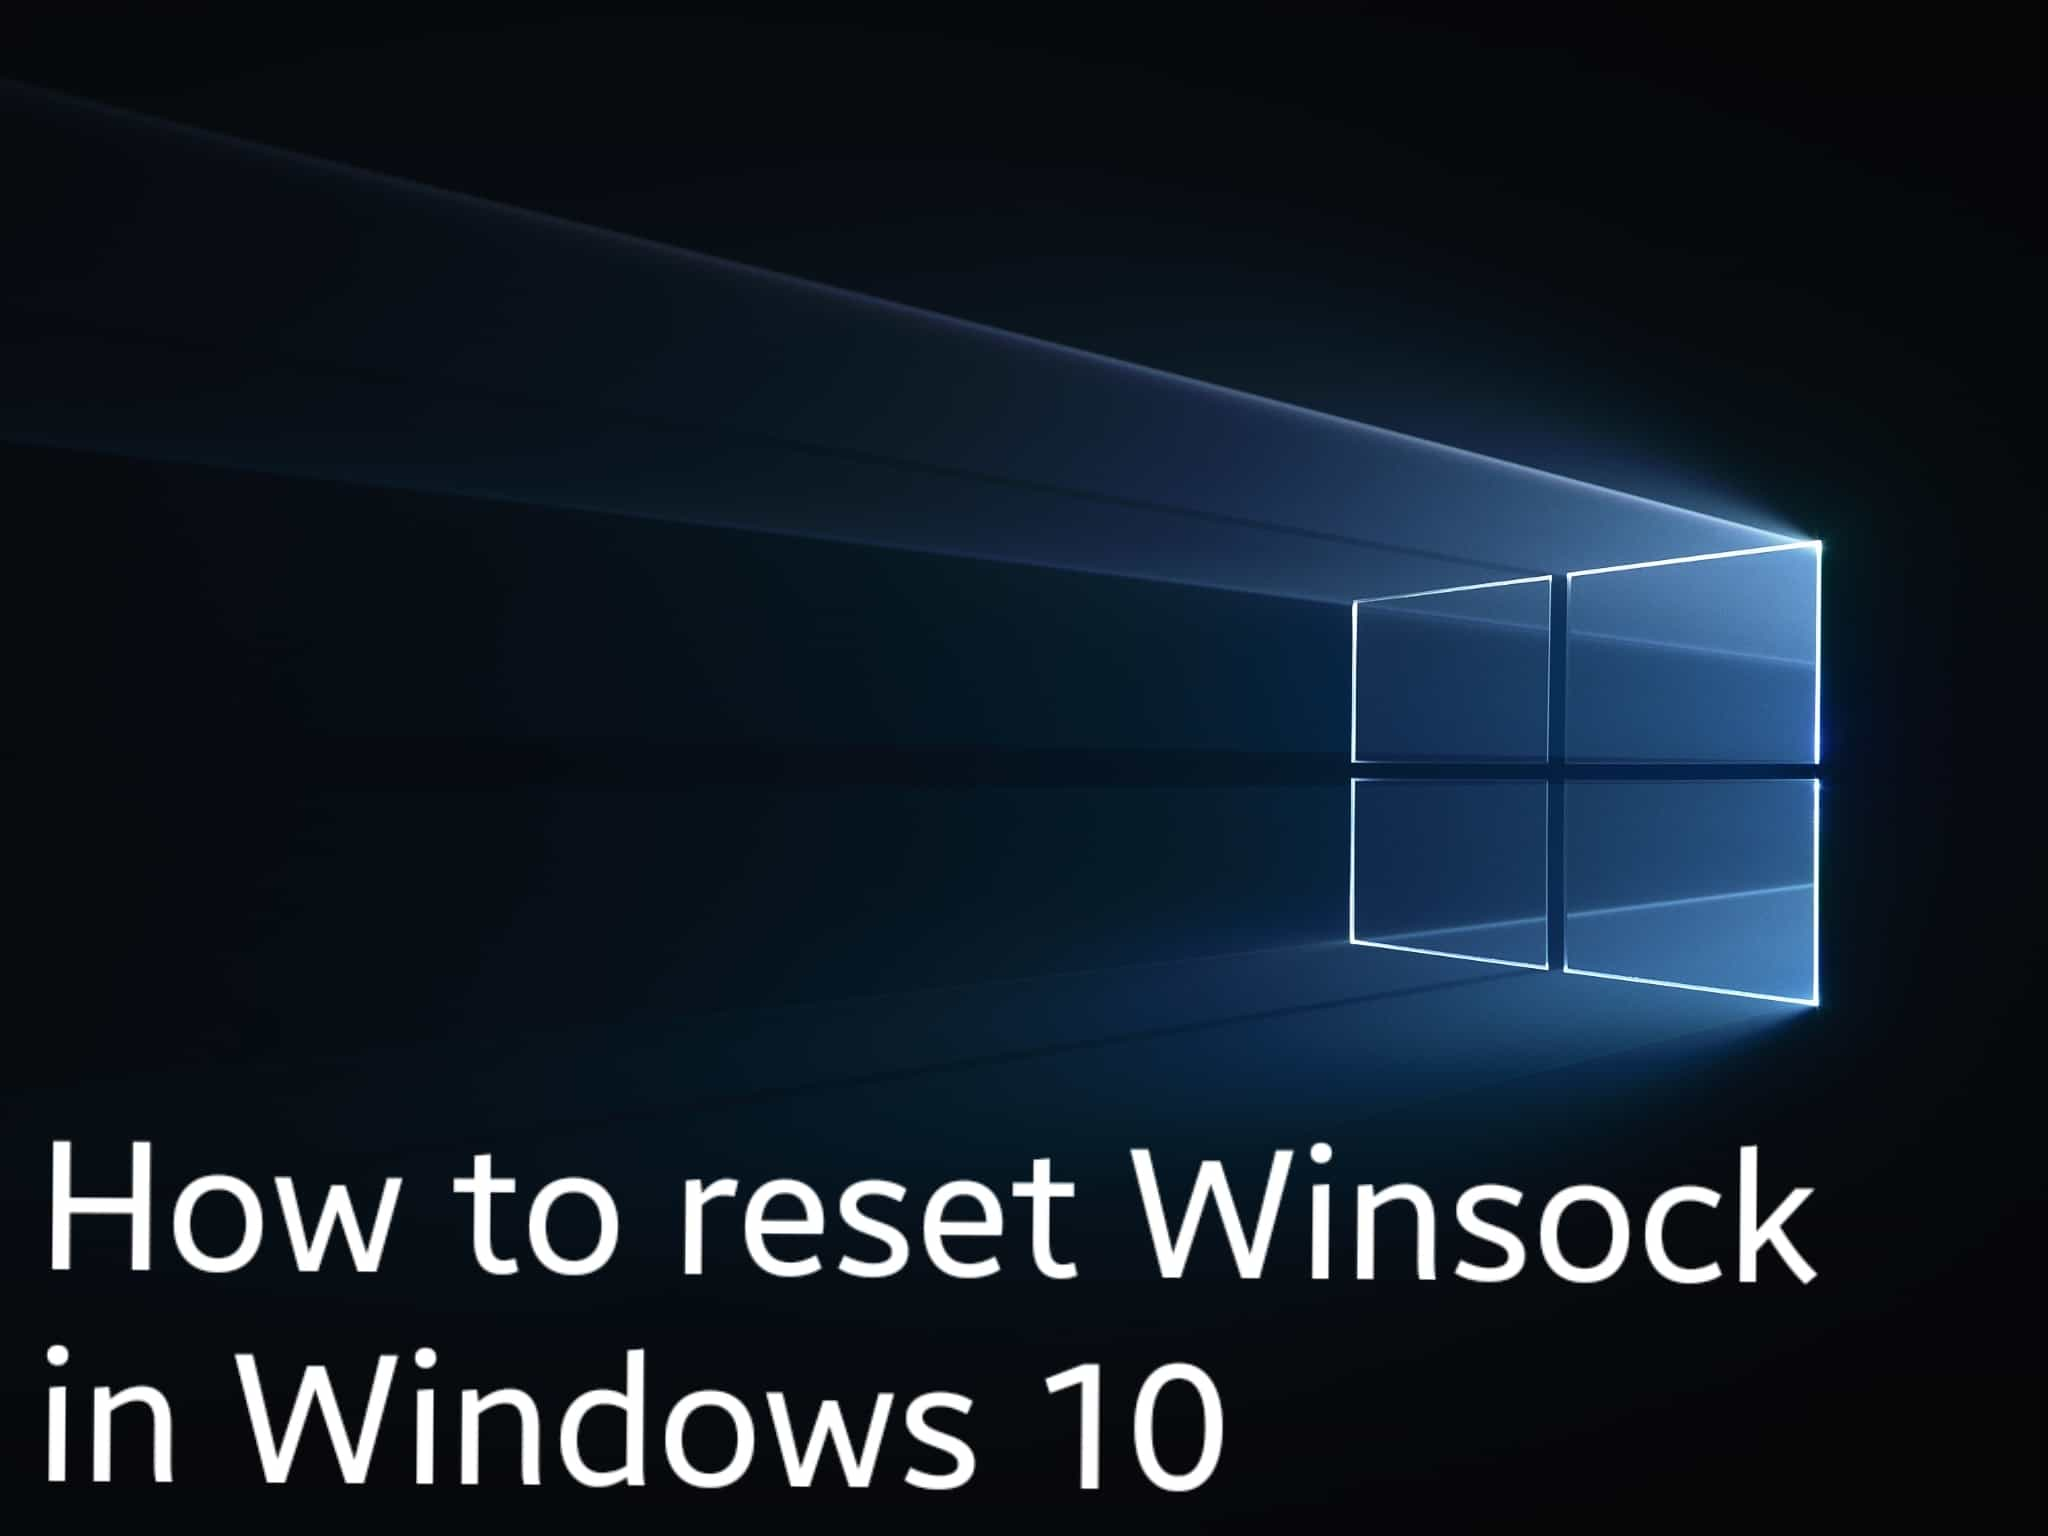 How to reset Winsock in Windows 10